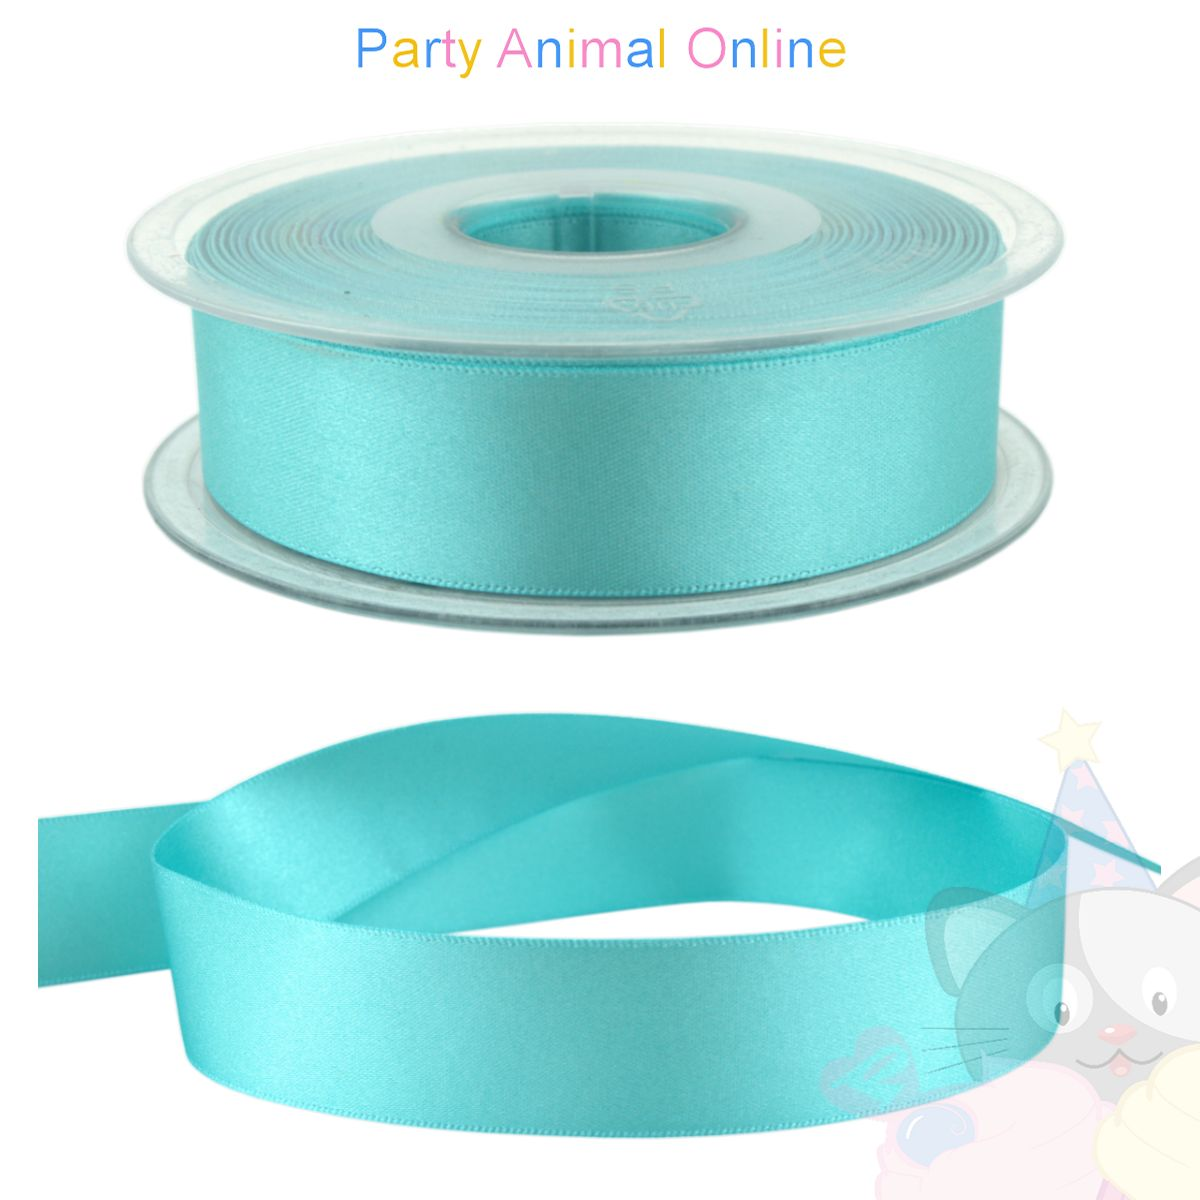 Ribbon 25mm Wide - Colour 48 (Turquoise)